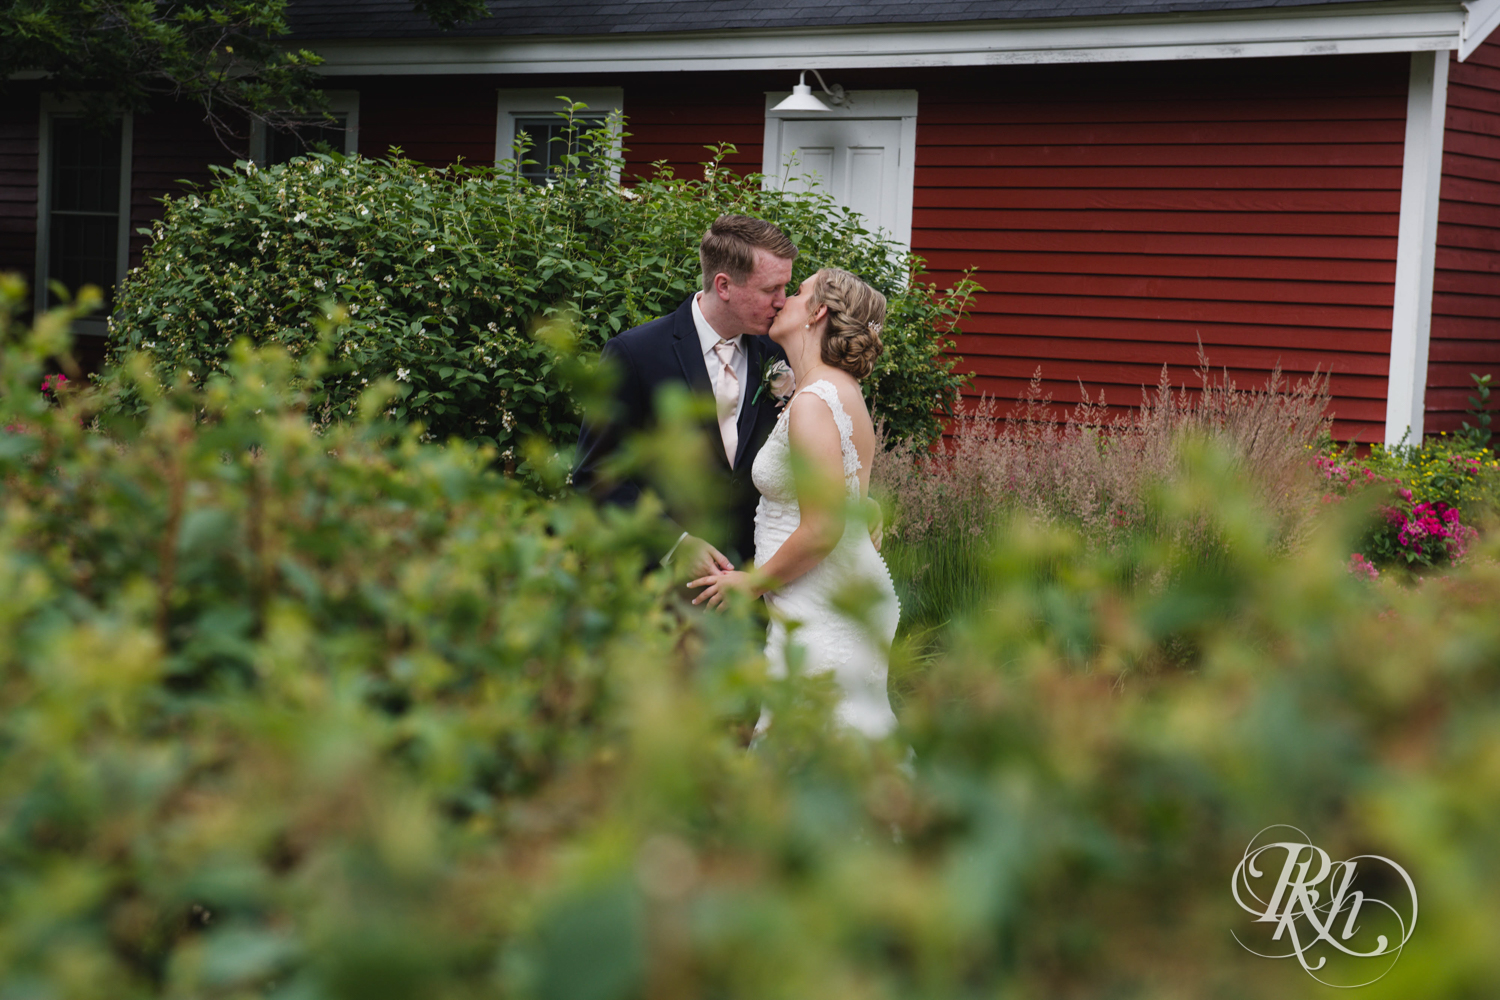 Minnesota Wedding Photography - RKH Images - Best of 2018 (15 of 51).jpg